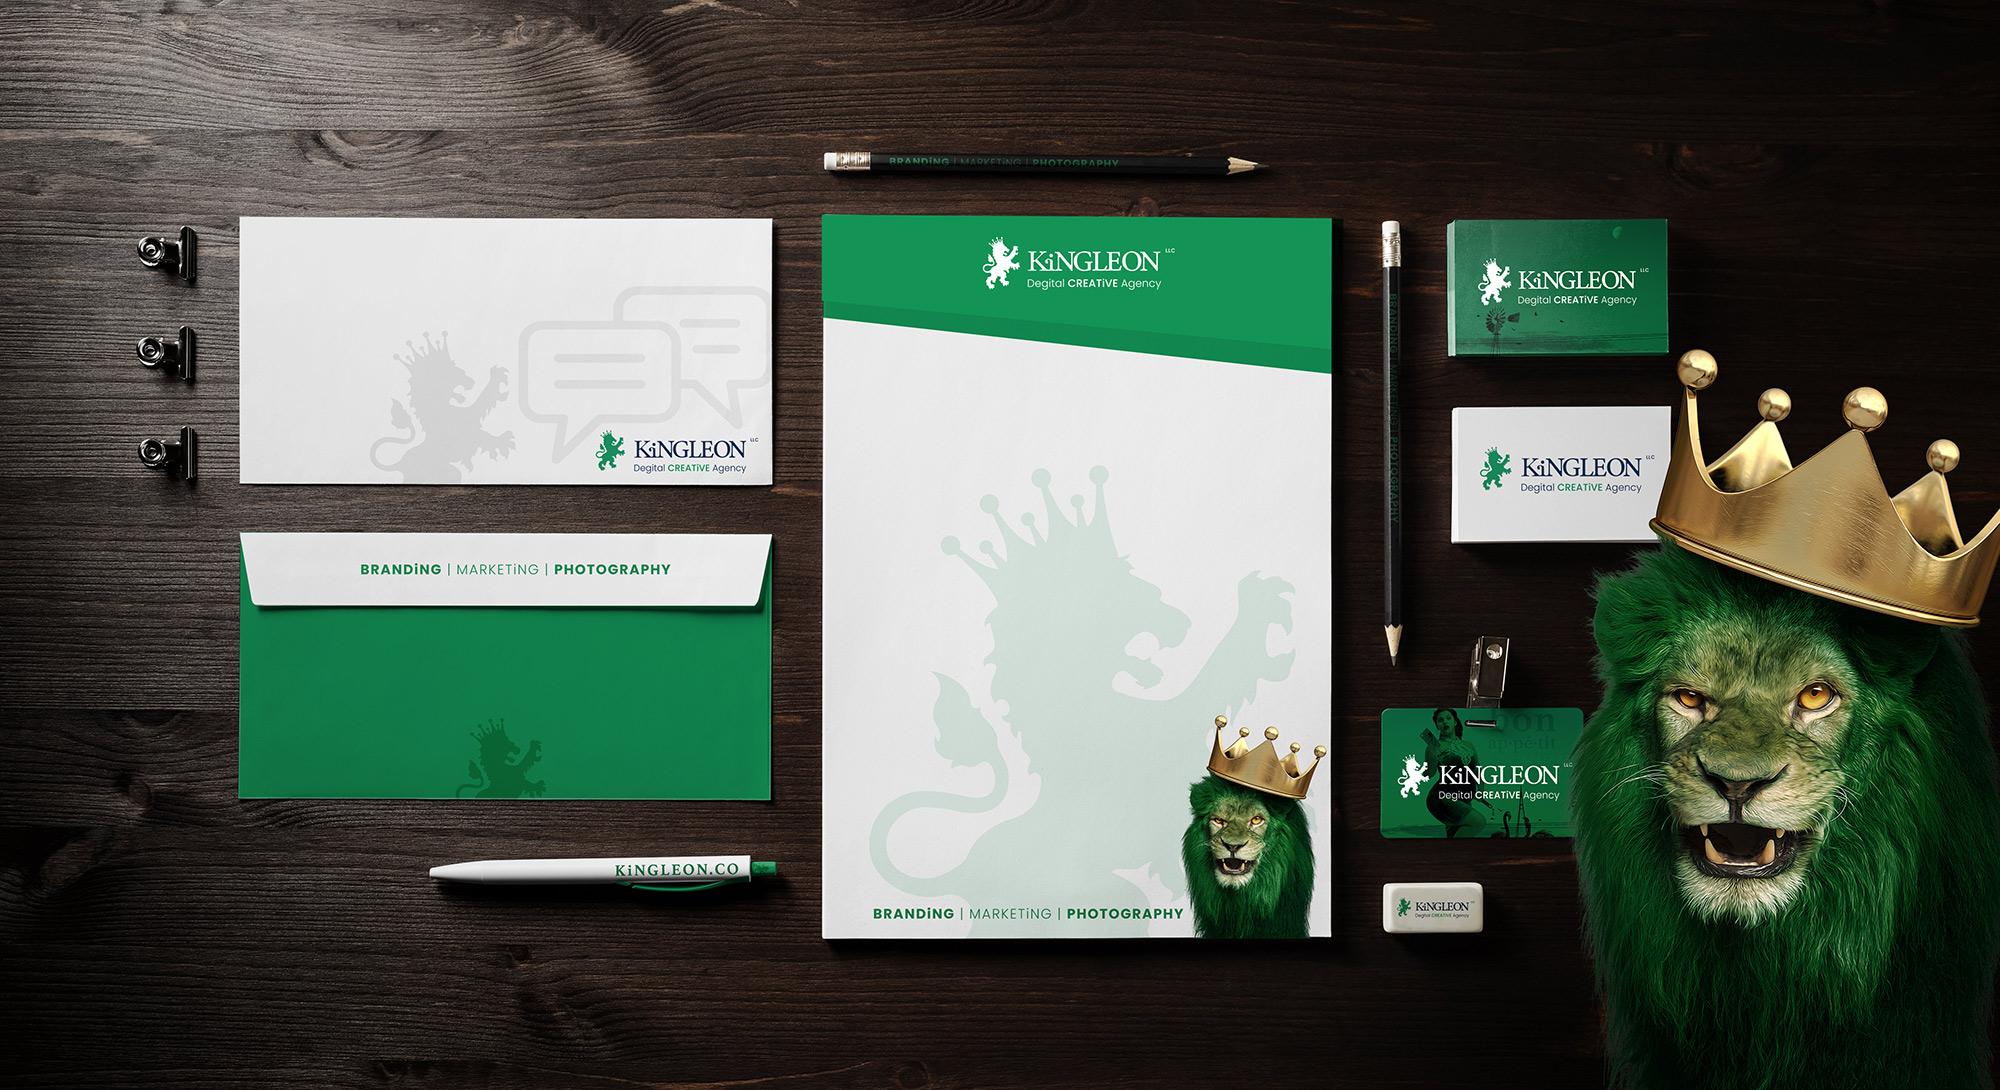 Kingleon-Branding-Stationary-Mockup-WEB